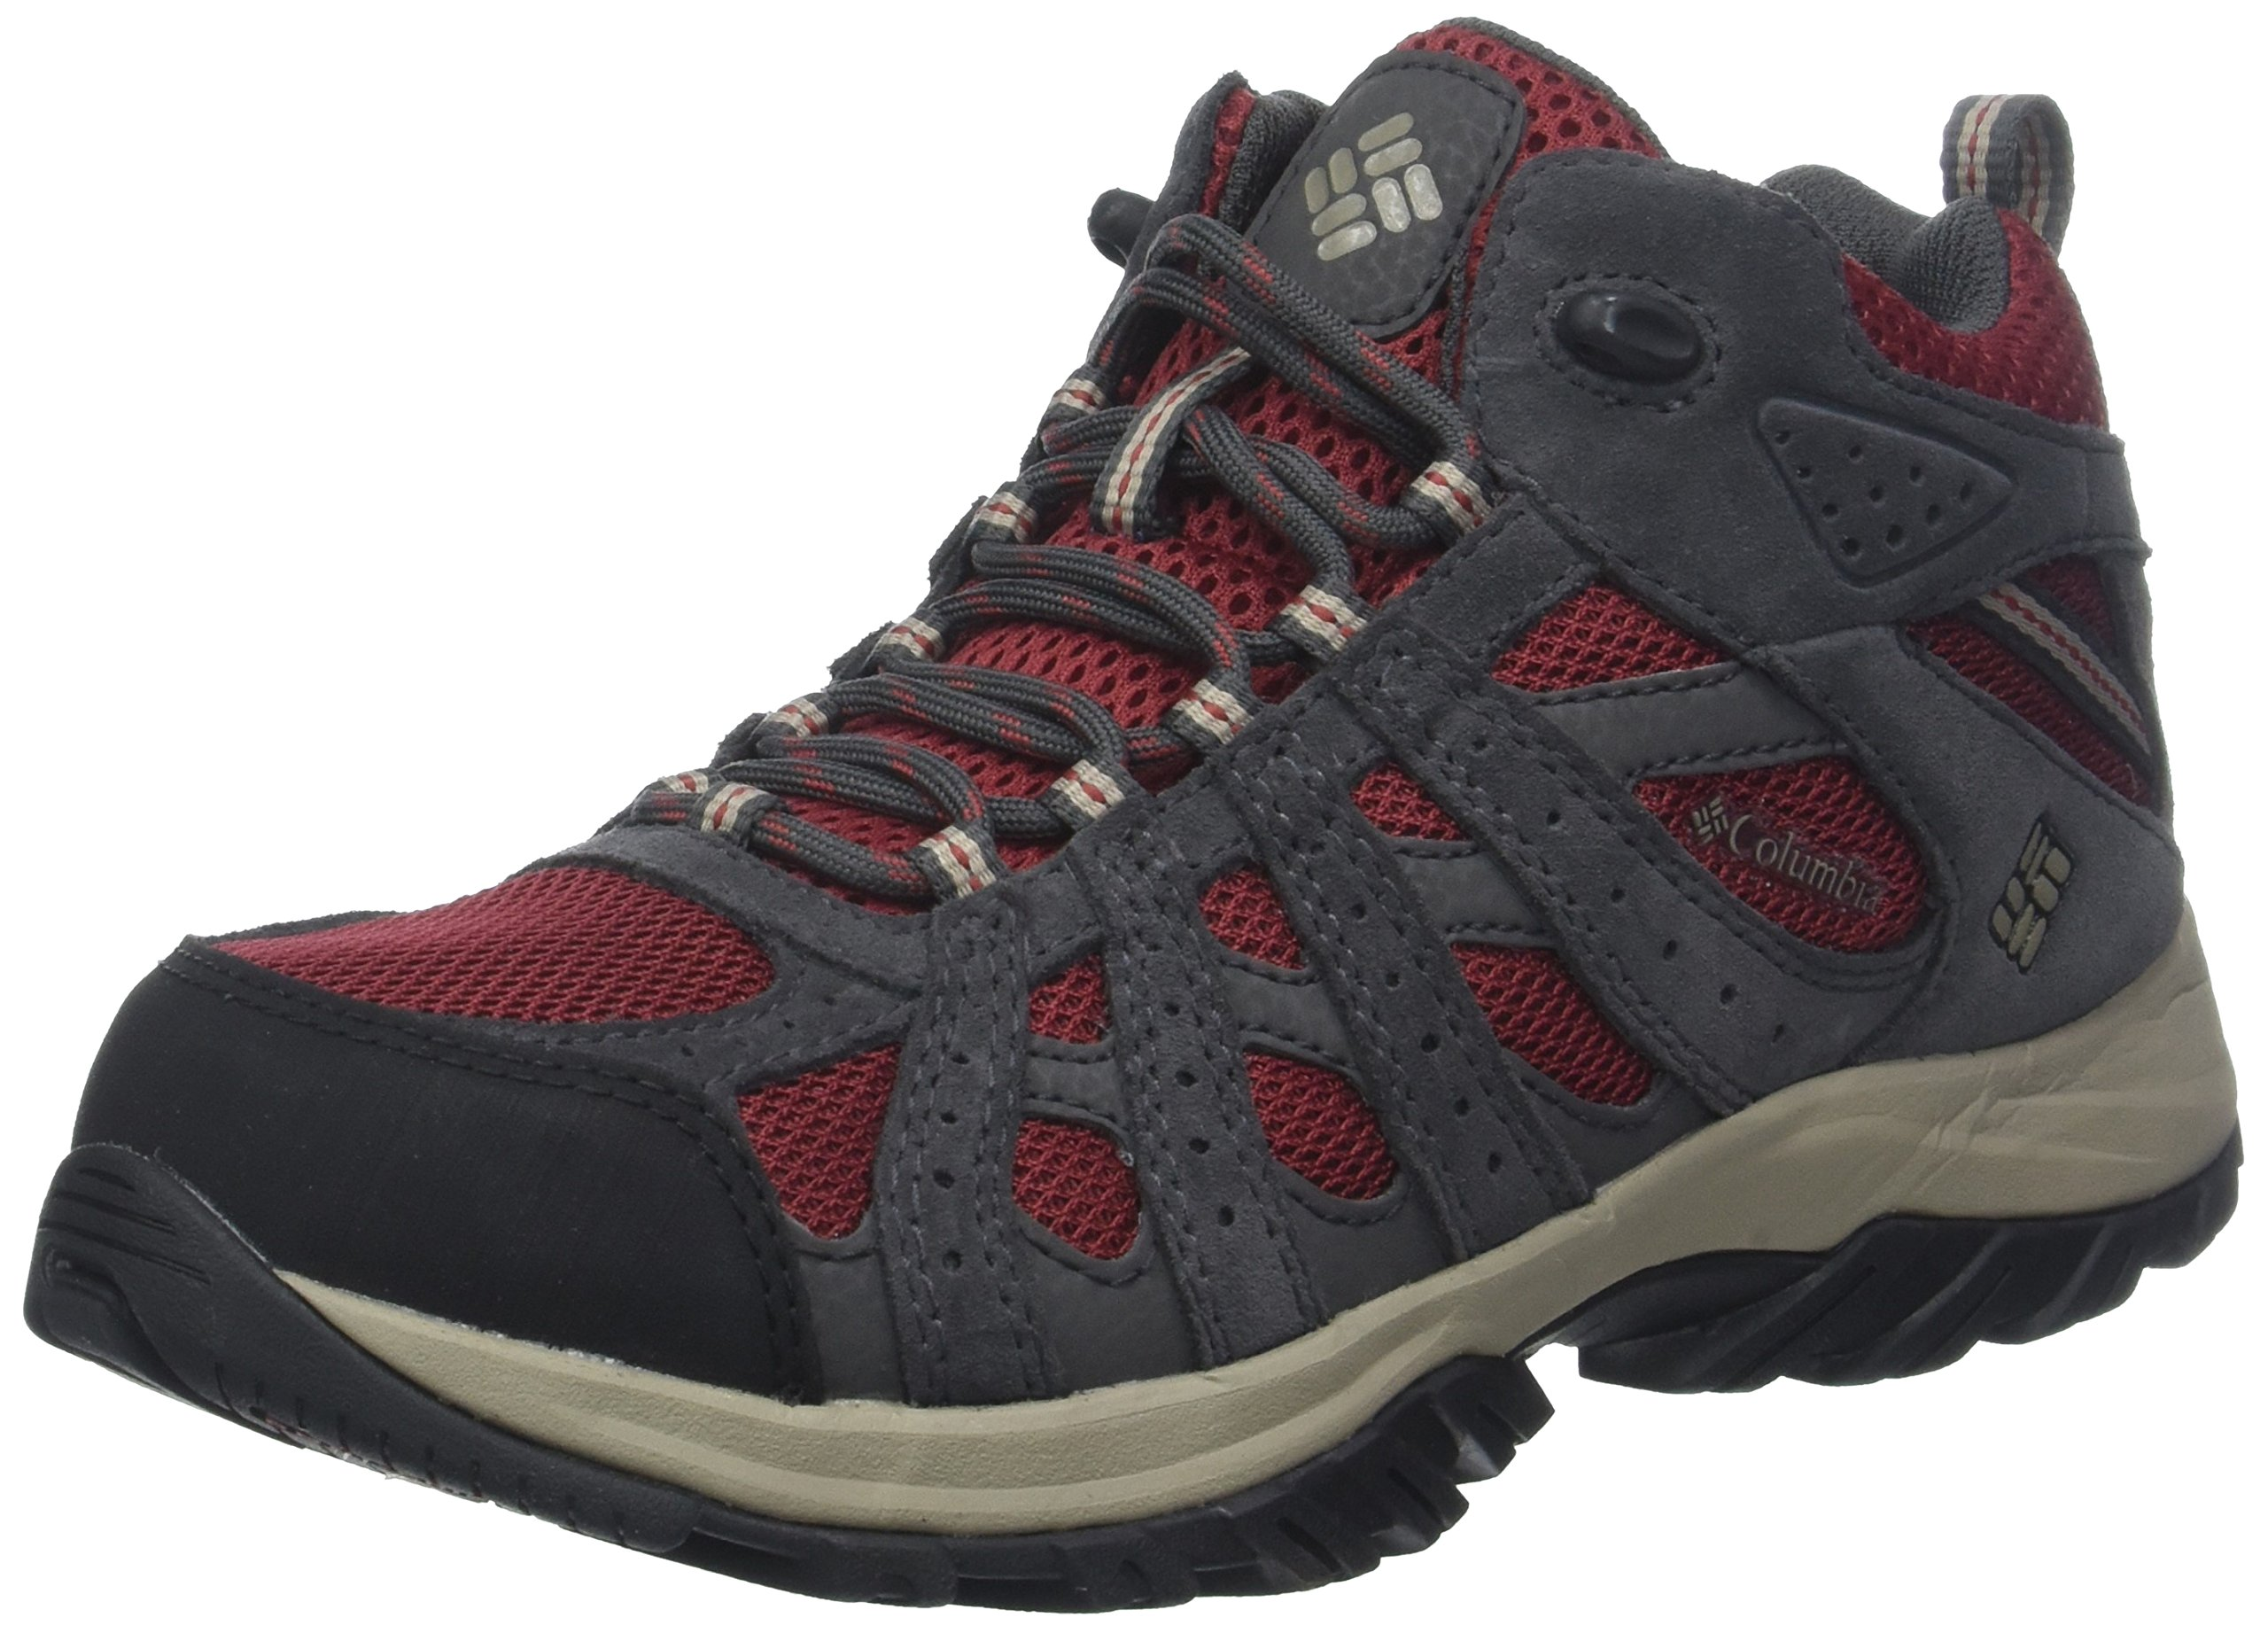 1fbbbf902ae Columbia Canyon Point Mid Waterproof Chaussures de Randonnée Hautes Femme  product image